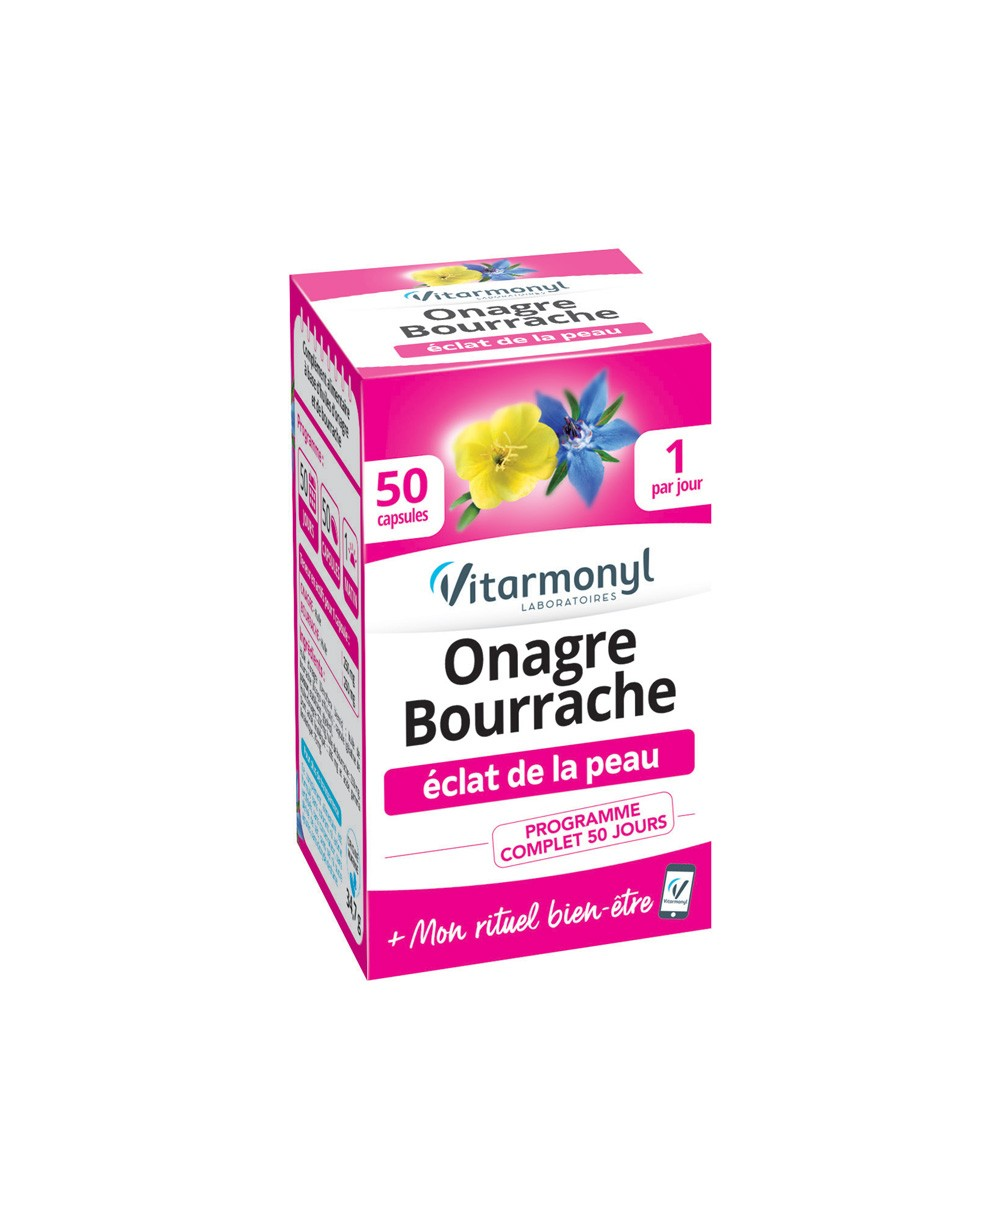 Image Onagre Bourrache